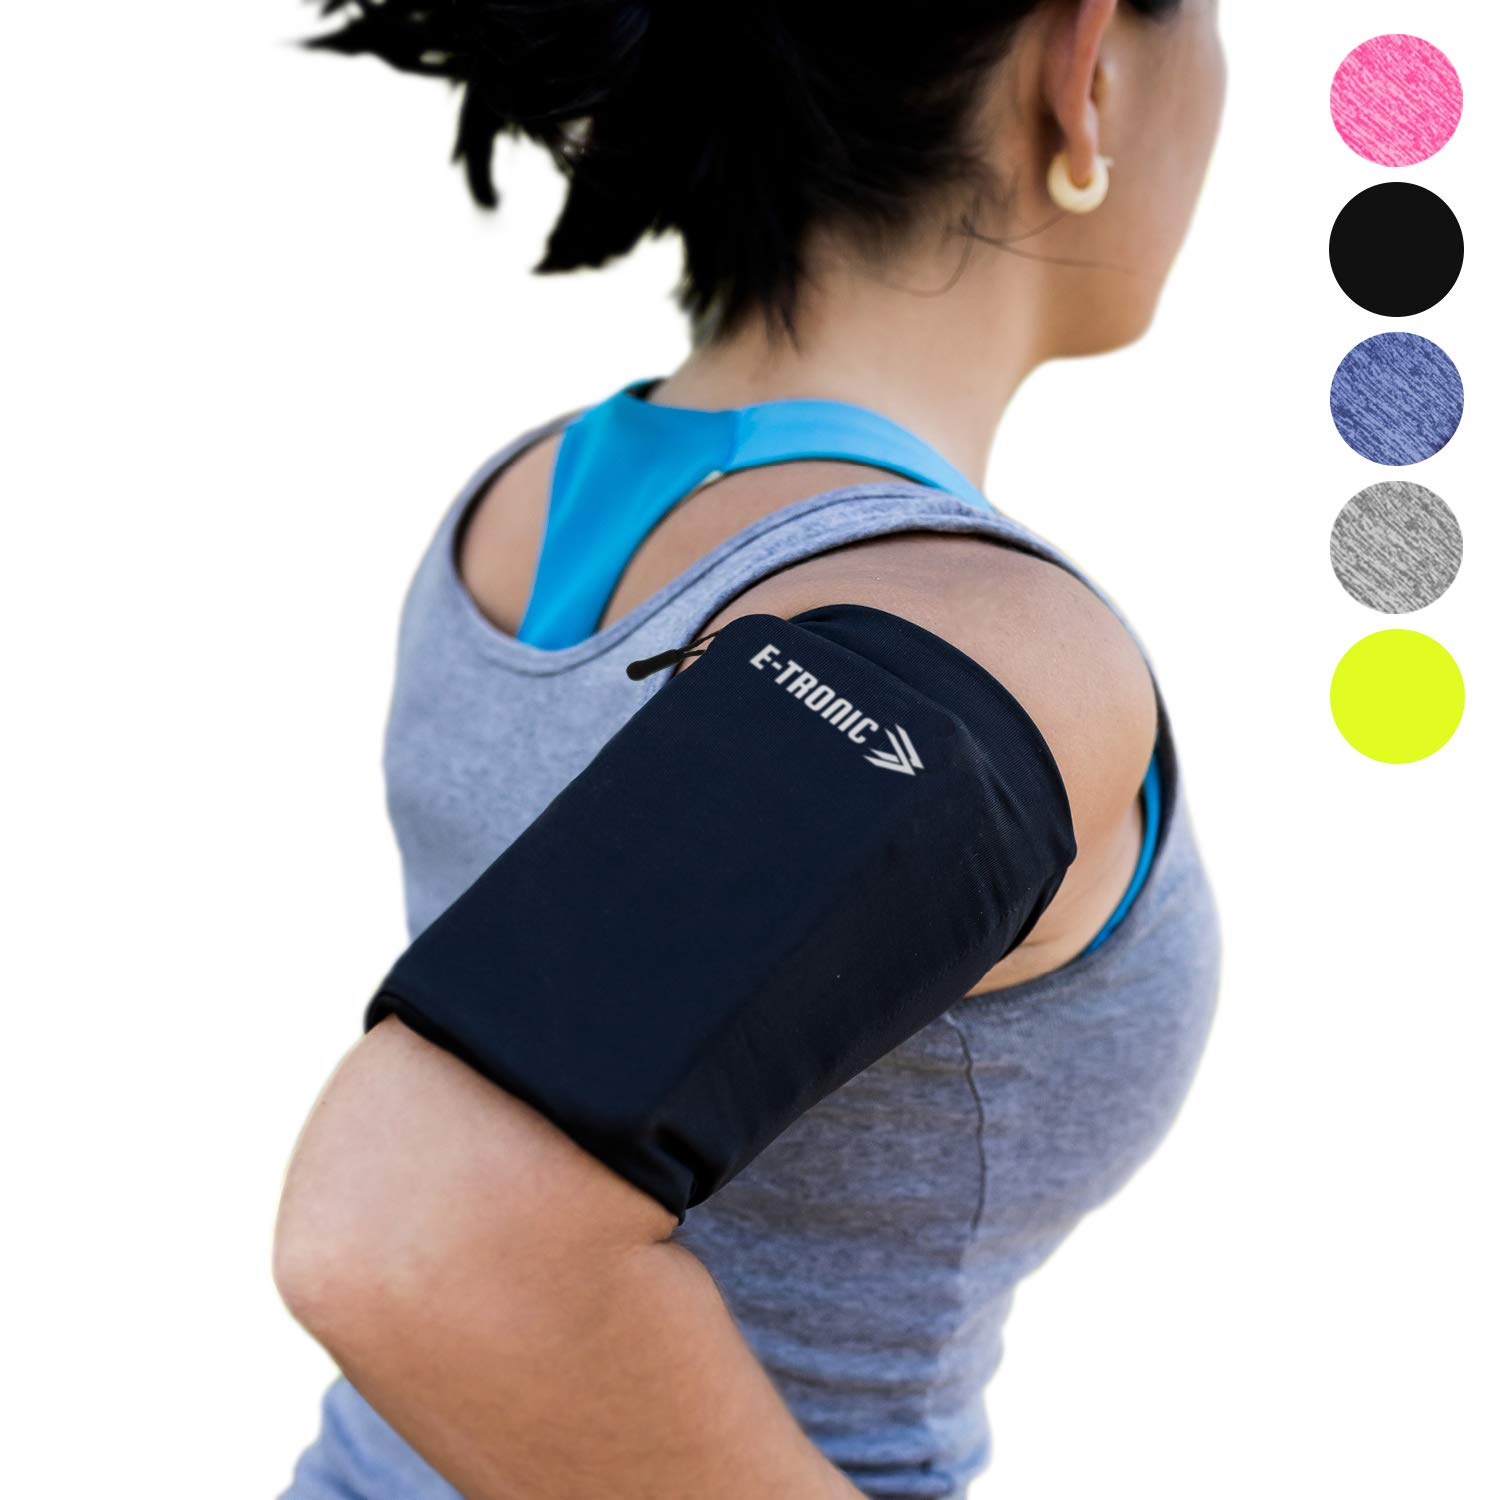 Phone Armband Sleeve Best Running Sports Arm Band Strap Holder Pouch Case Gifts for Exercise Workout Fits iPhone 6 6S 7 8 X Plus iPod Android Samsung Galaxy S8 S9 Note 5 9 Edge. For Women & Men MEDIUM by E Tronic Edge